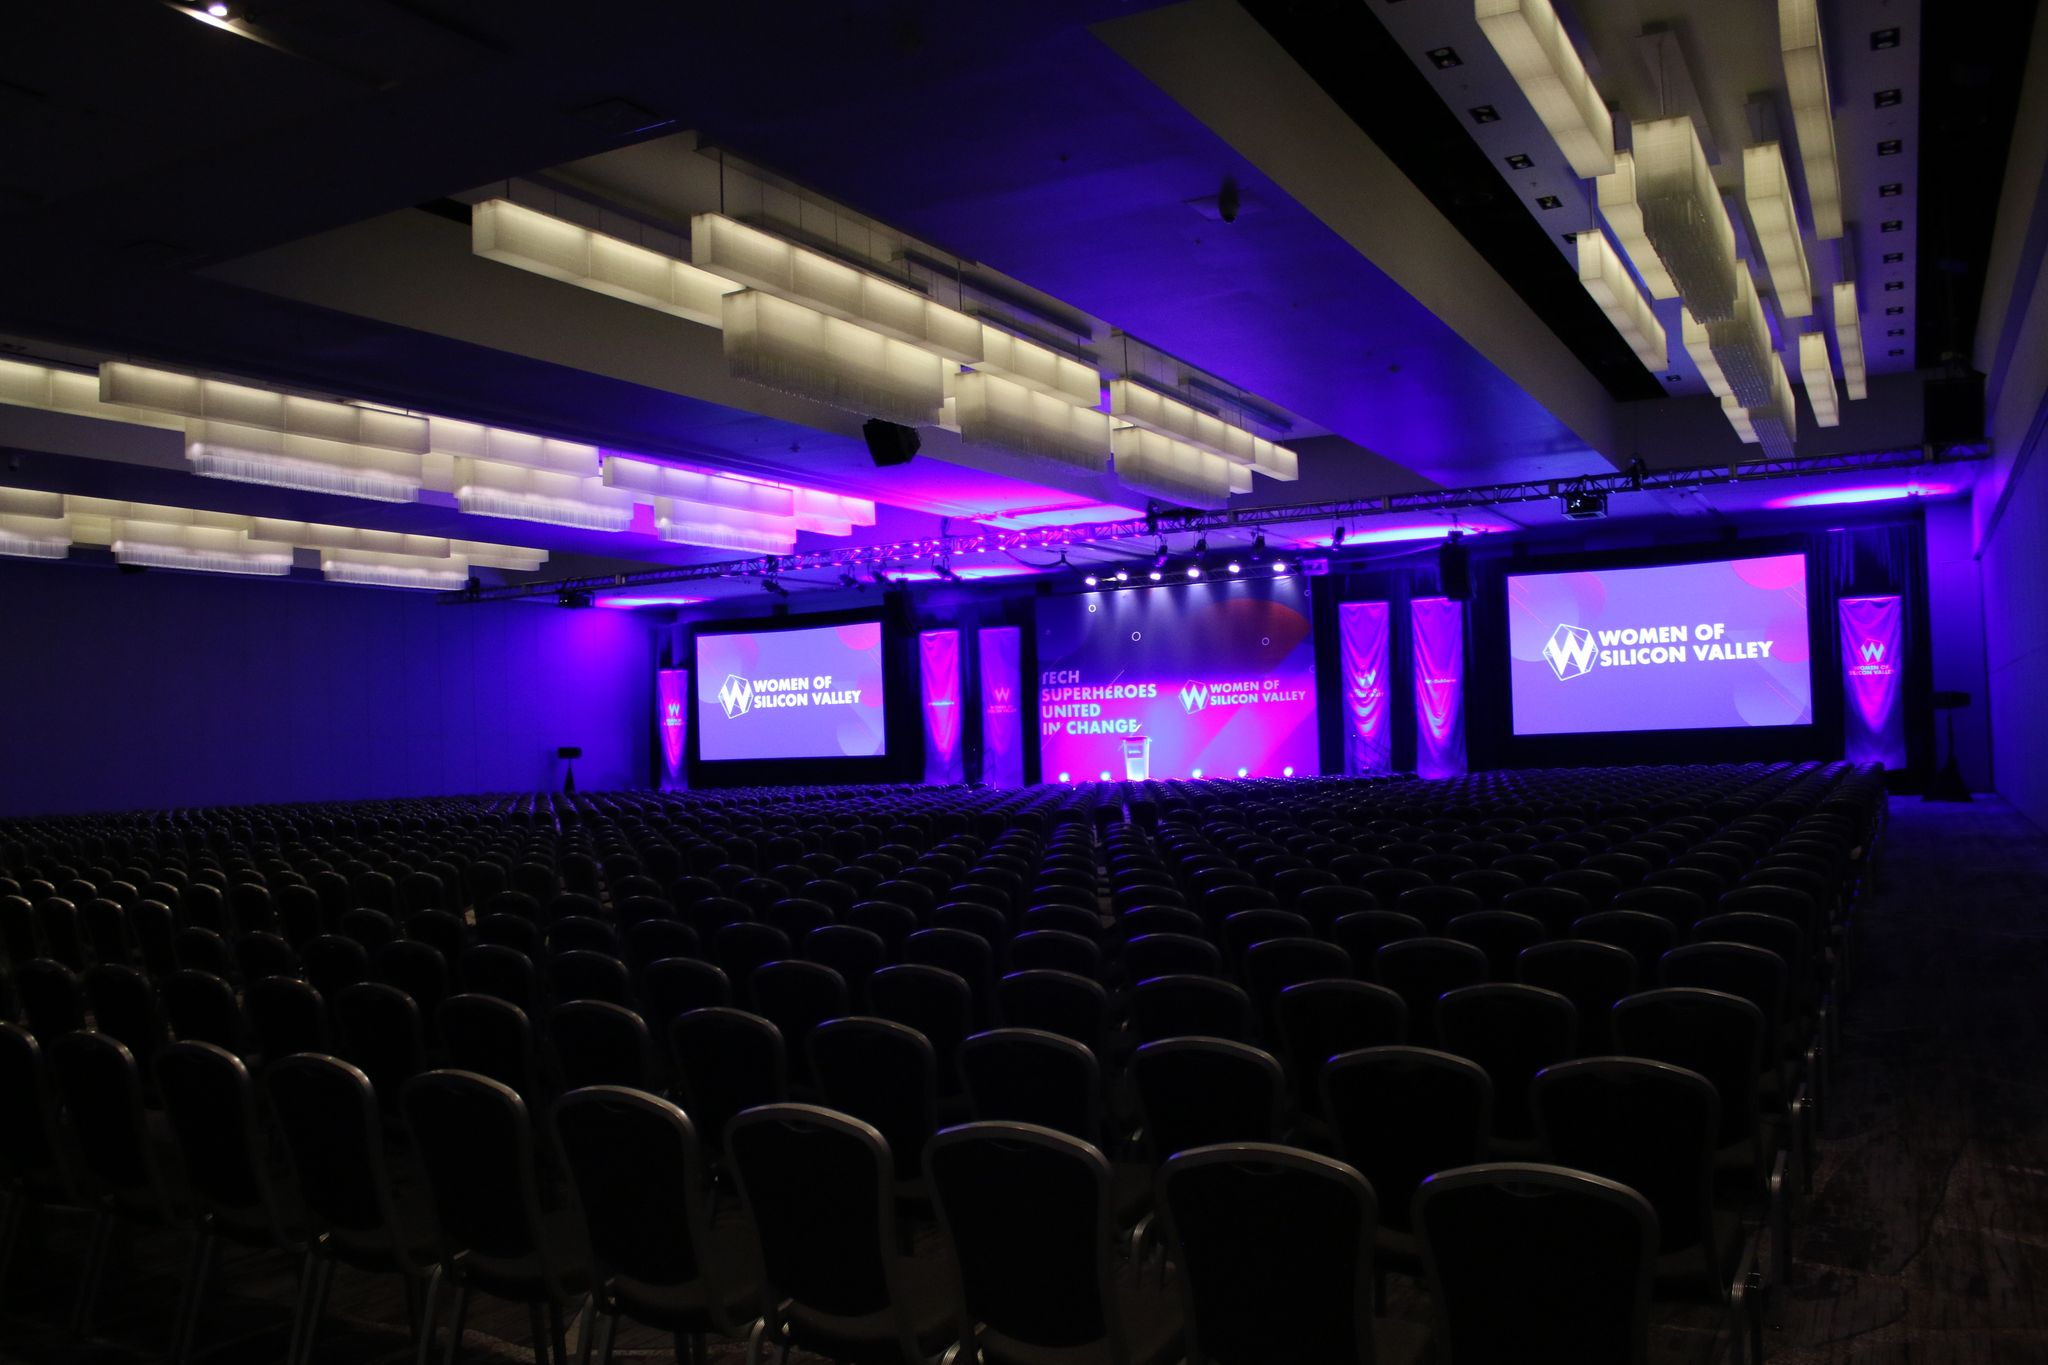 photo of women of silicon valley 2019 conference stage